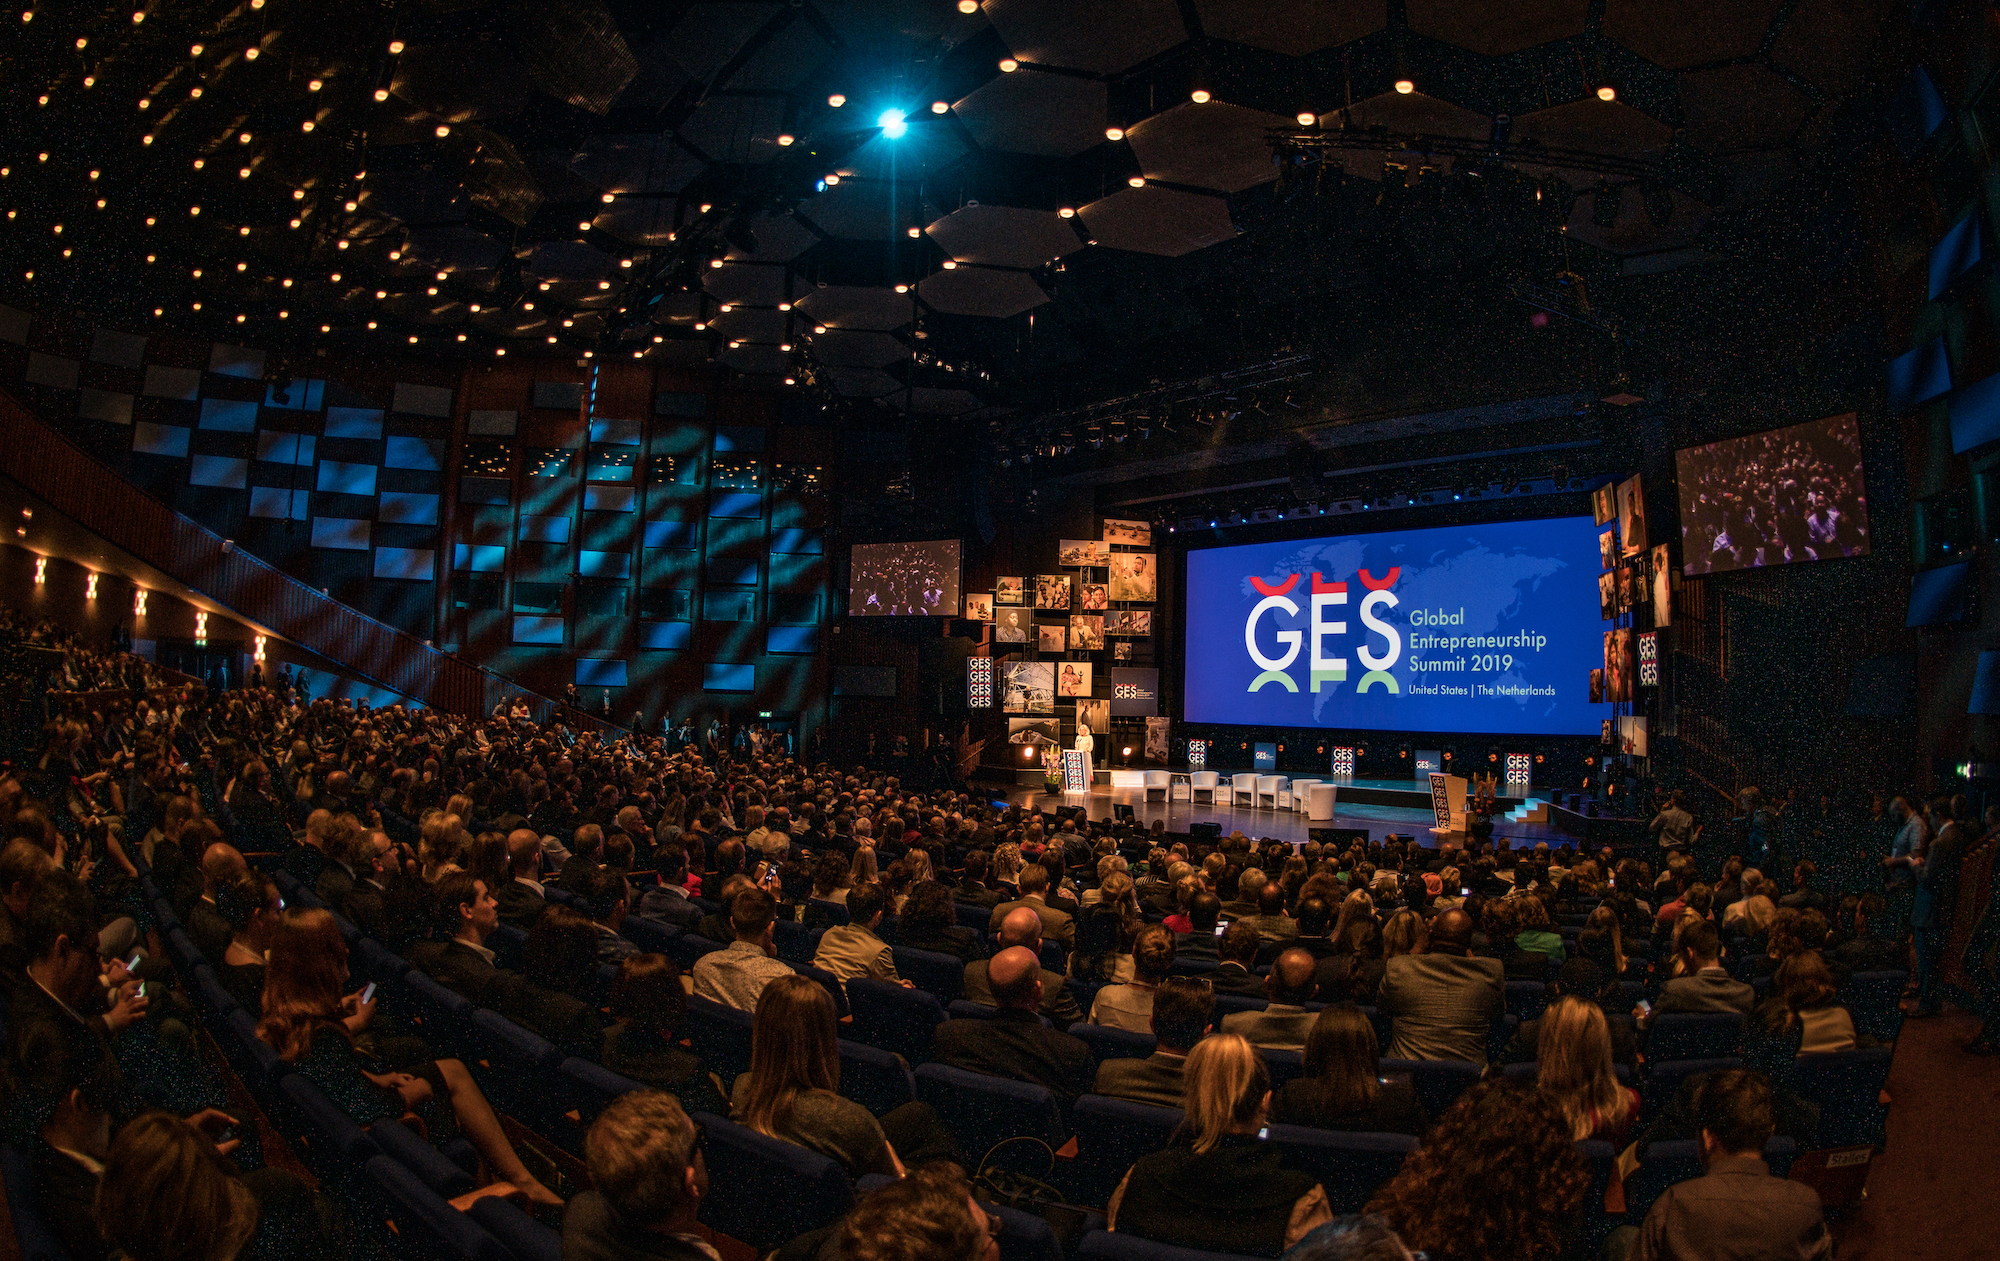 The 2019 Global Entrepreneurship Summit took place June 3-5 in The Hague, Netherlands with attendees from 140 countries (photo credit: Paul Barendregt / GES 2019).